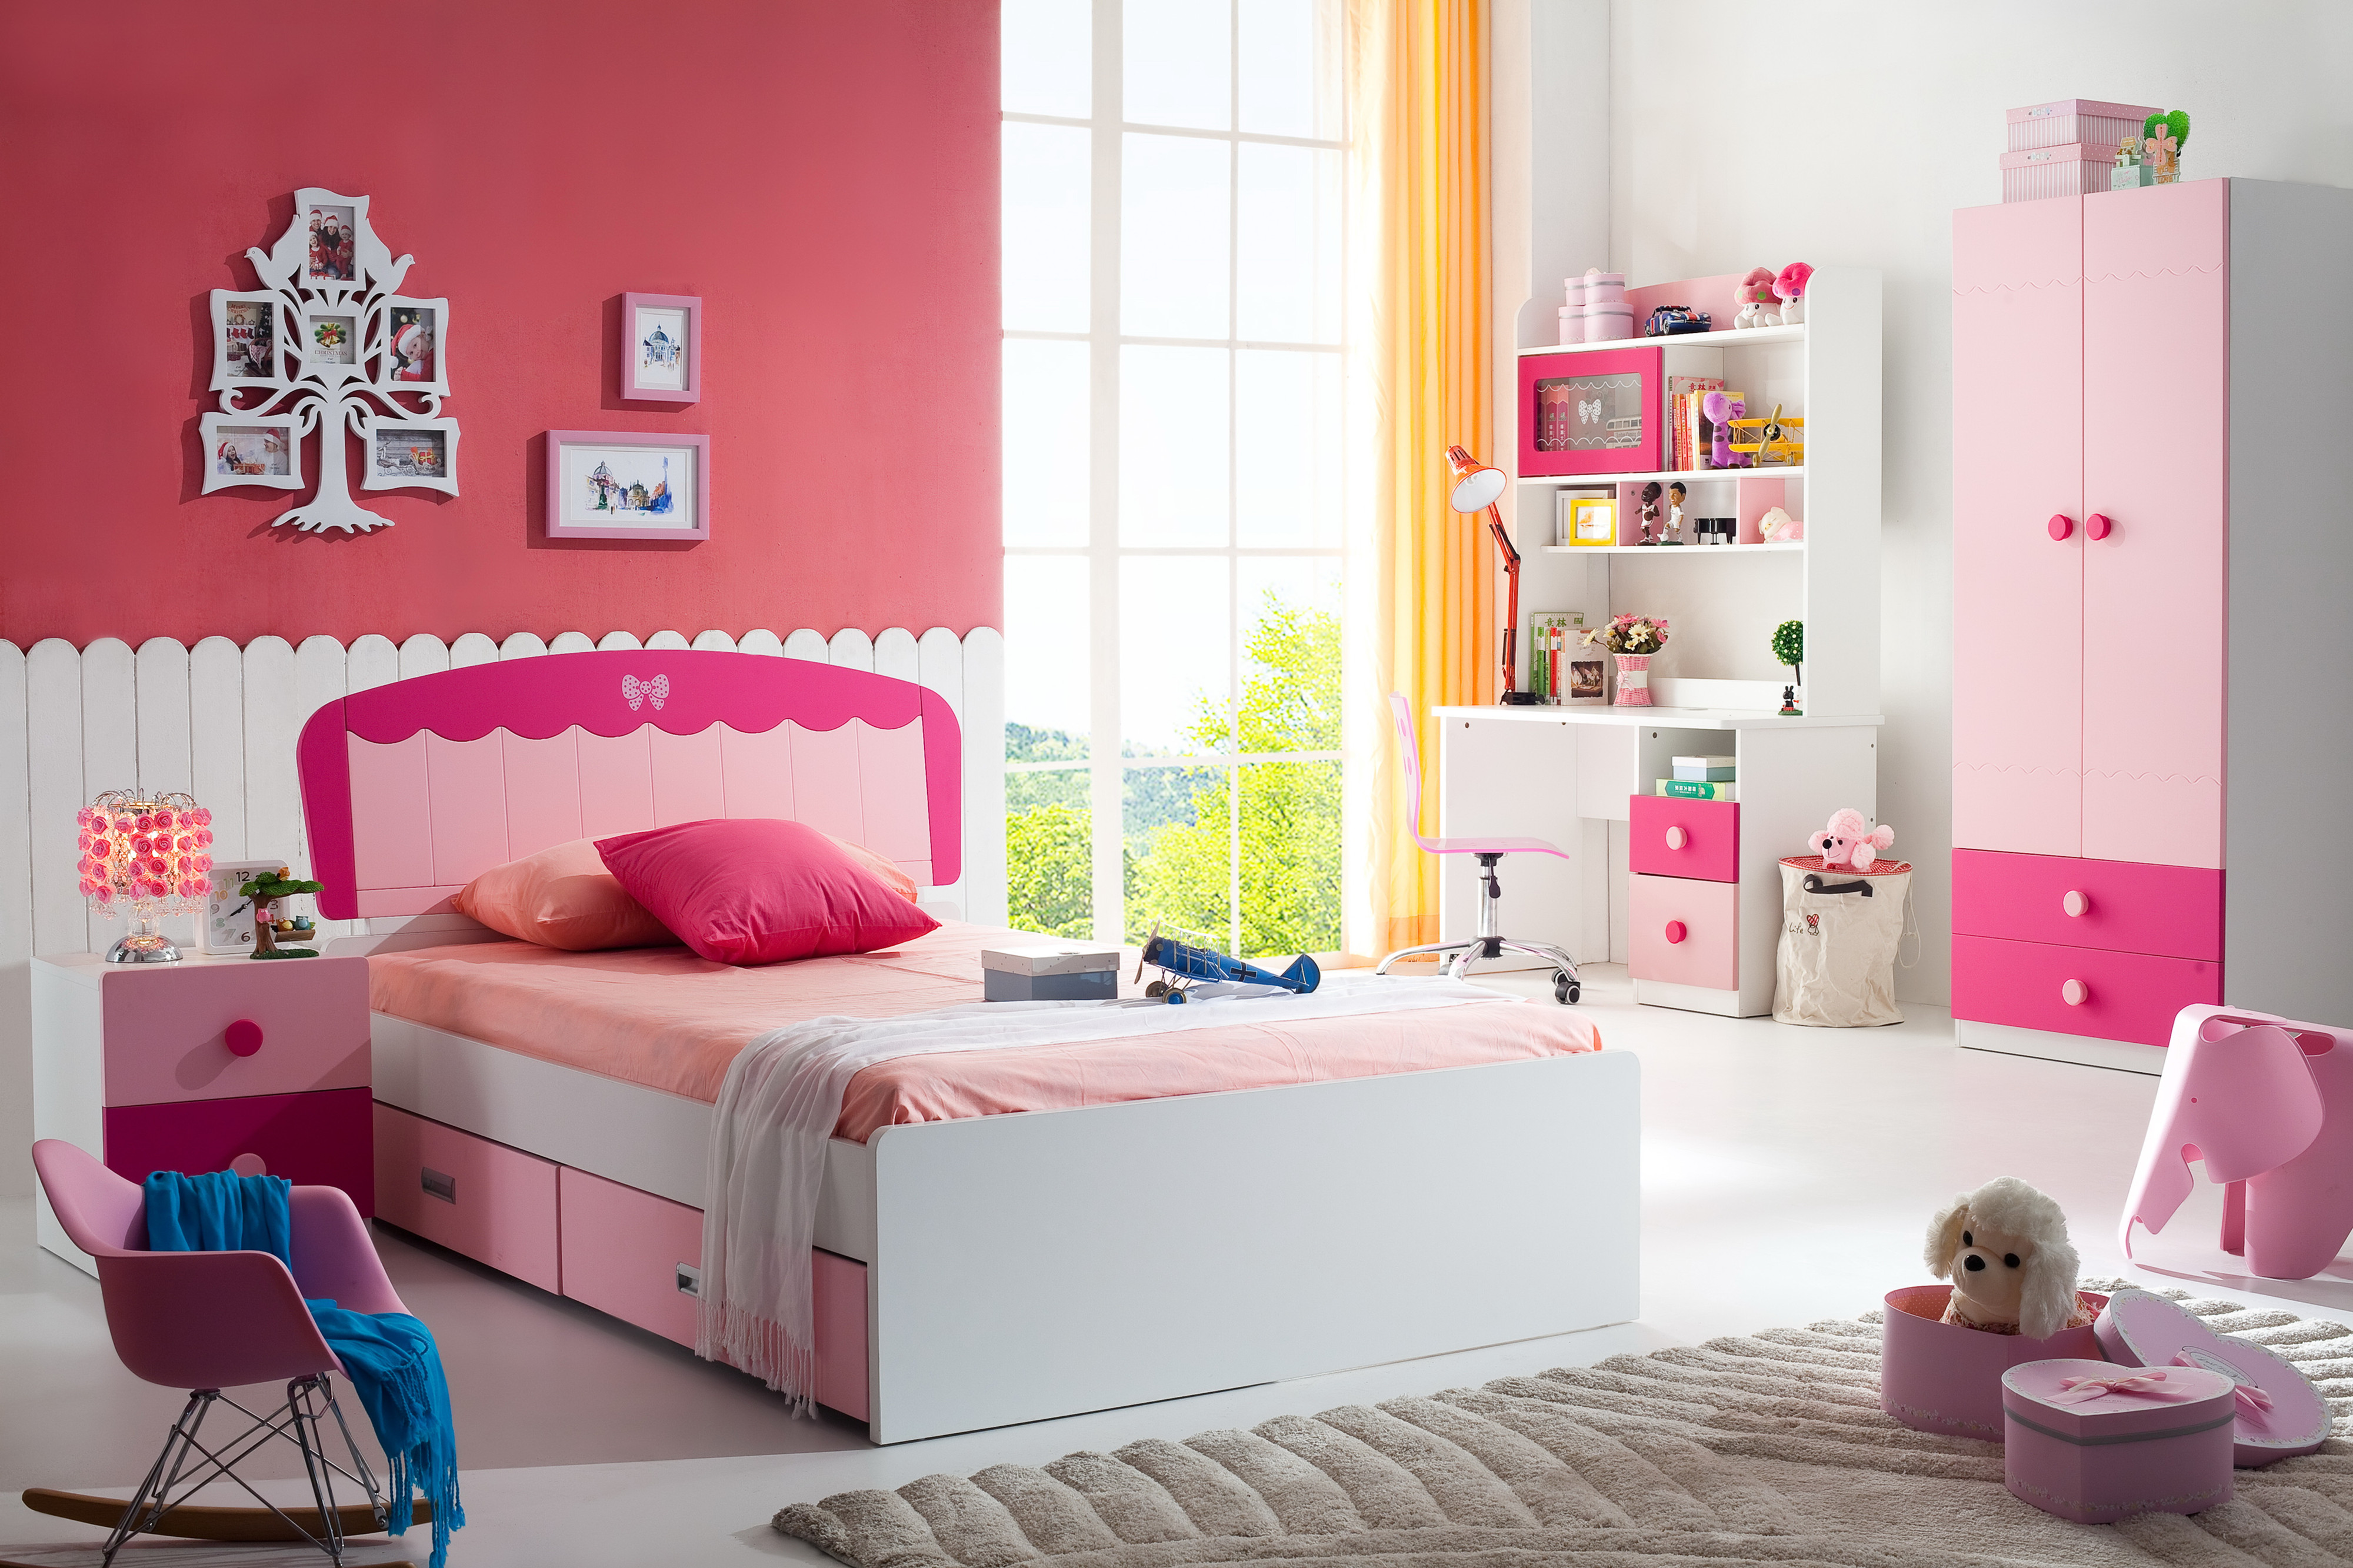 New Design Mdf Cute Pink Color Single Bed Children Bedroom Furniture Girls Bed View Girls Bed Shengmei Product Details From Foshan Shengmei Furniture Co Ltd On Alibaba Com